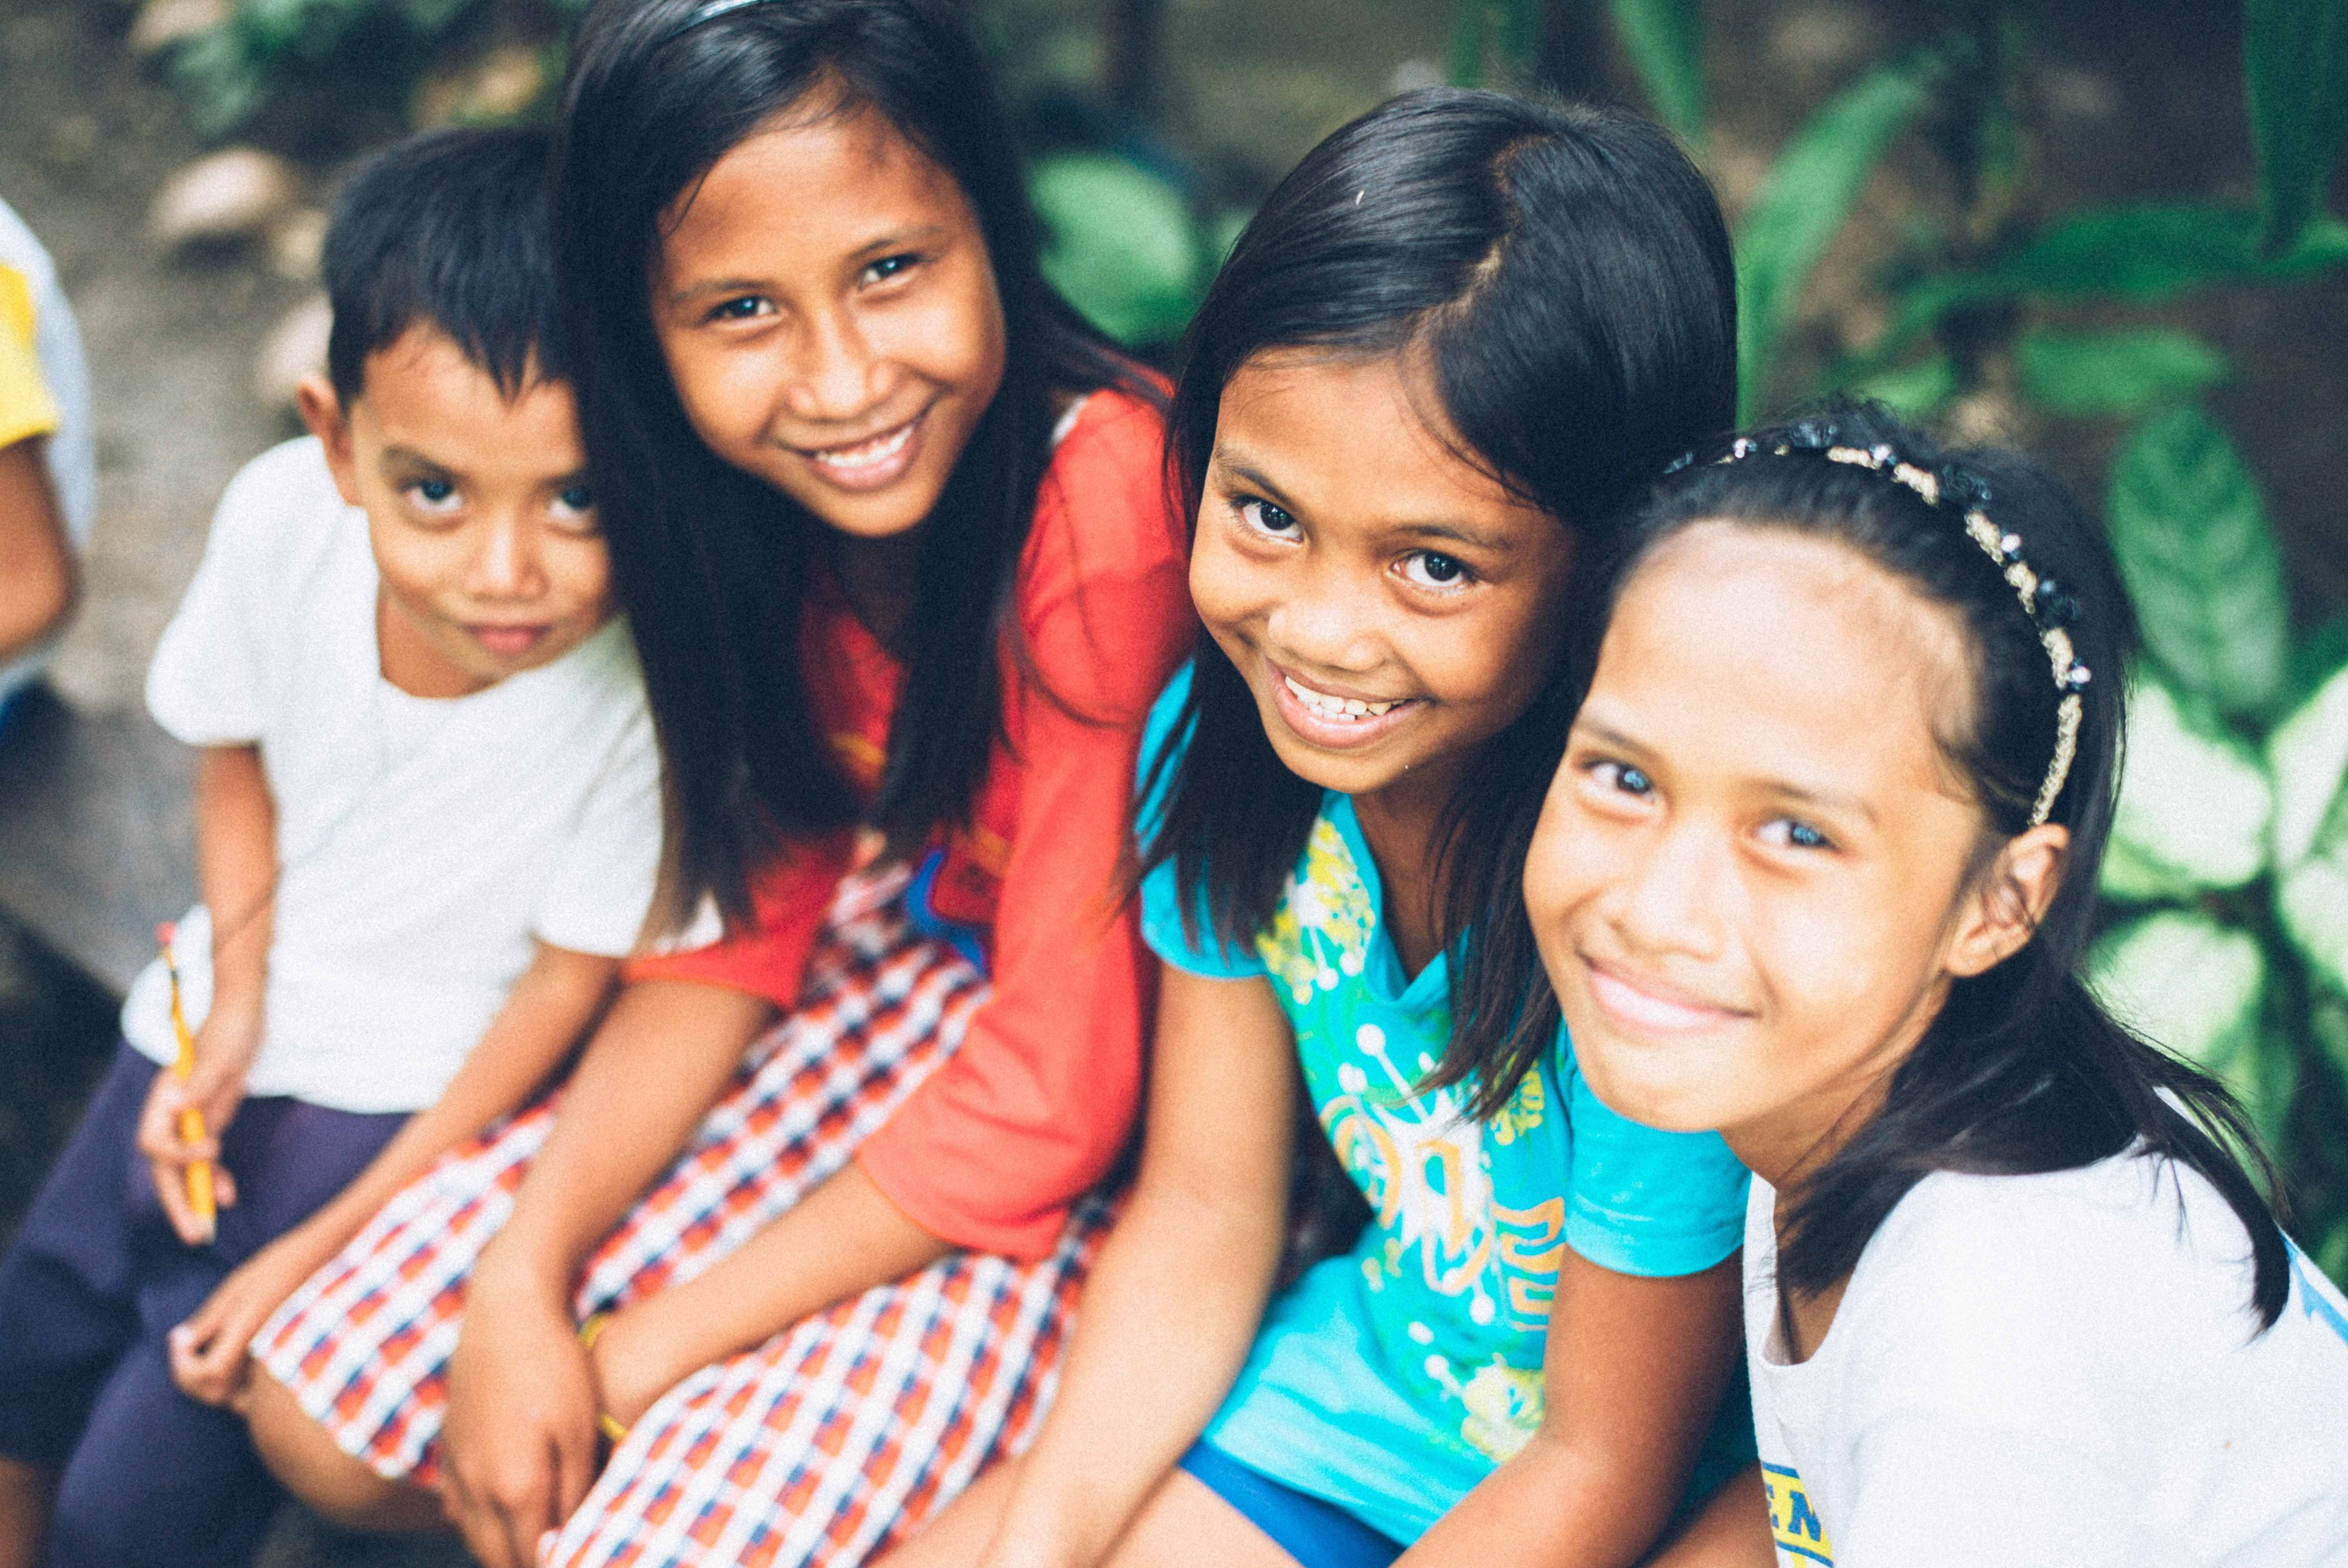 Cebu girls home seeks security improvements; the story of one orphan girl's path to success and her dream to be a teacher. Full story: http://peacegospel.org/cebu-girls-home-seeks-security-improvements-story-one-orphan-girls-path-success-dream-teacher/